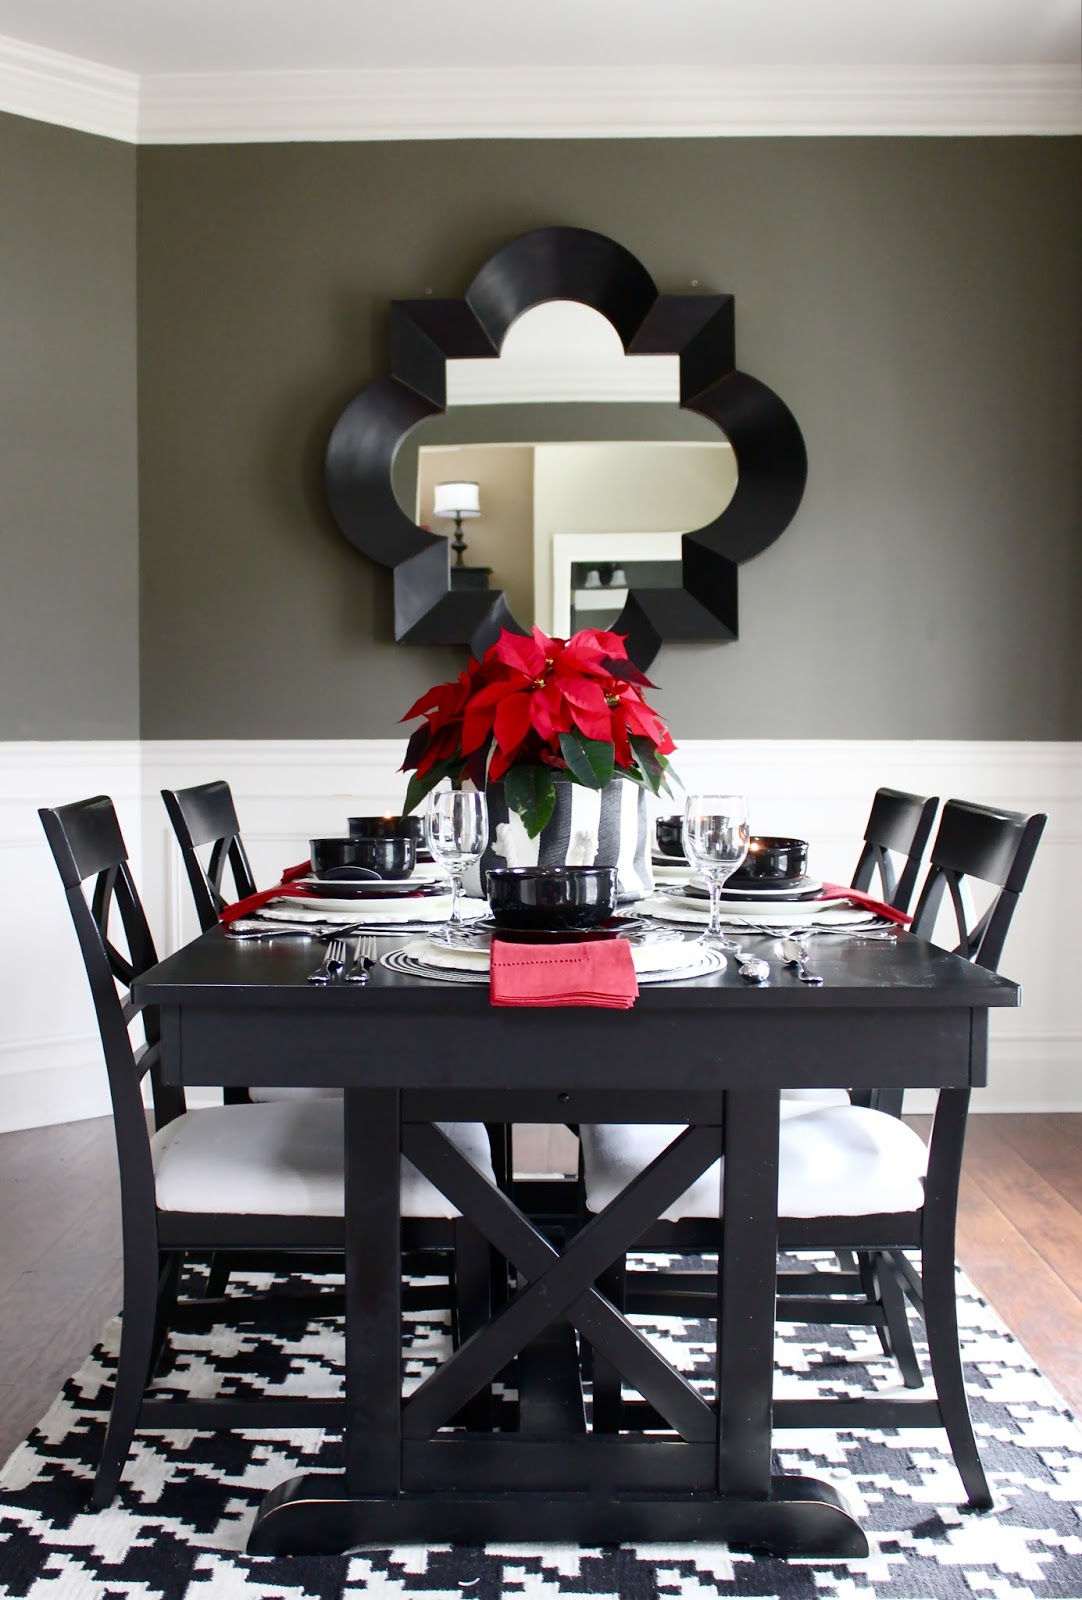 Easy Christmas Decor: Red Poinsettias in the Dining Room for Christmas